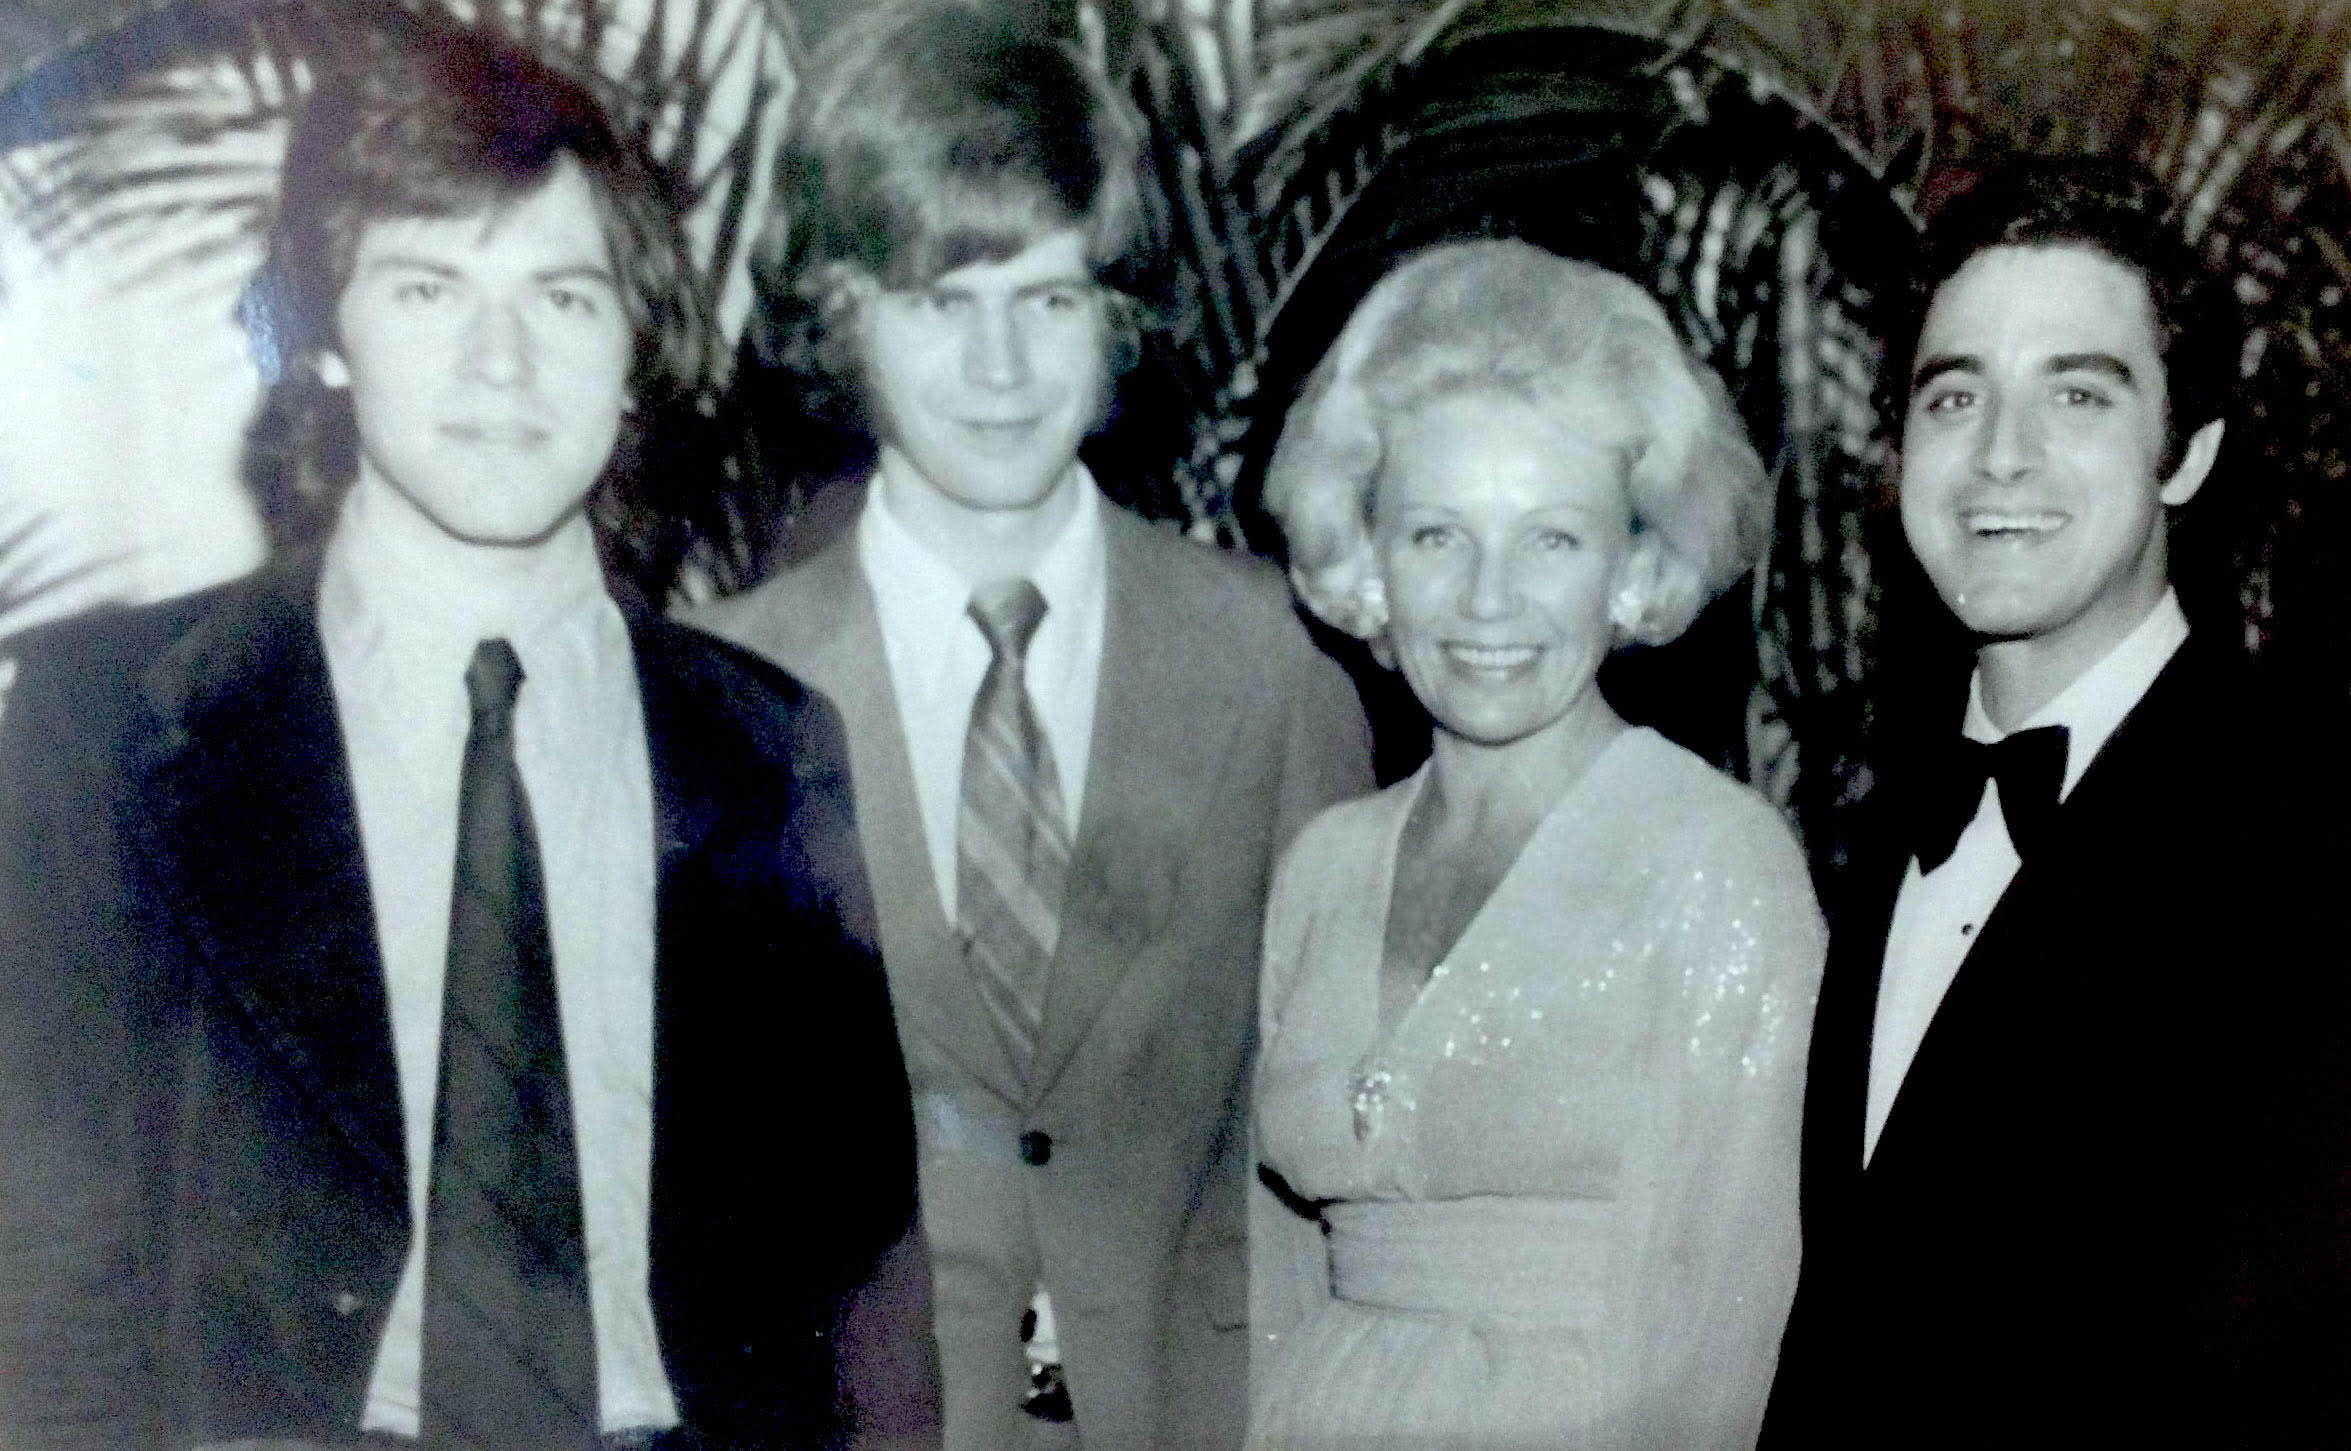 Winners of the 1975 National Competition with Lady Blanka Rosenstiel (L to R: Dean Kramer, Ian Hobson, Gustavo Ponzoa)